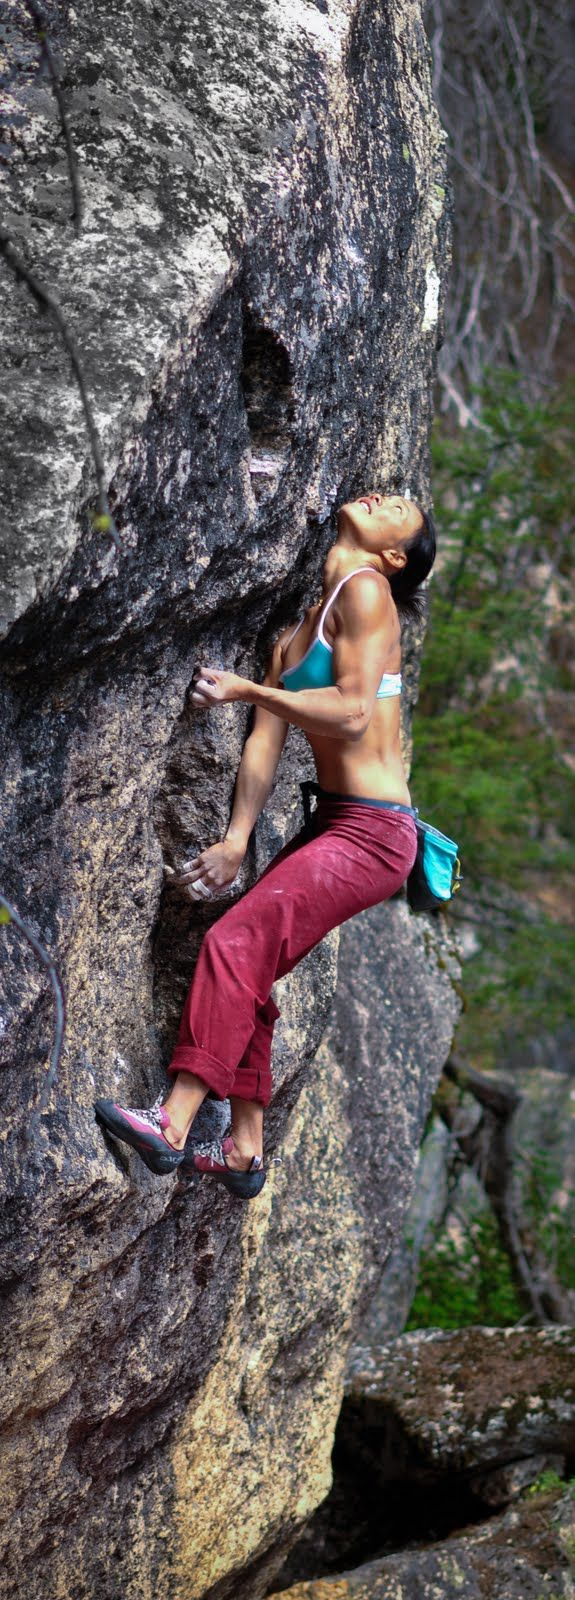 Sometimes even a photograph, the thought of the climb, makes my palms and soles tingle and ache...is that odd?~LB http://minivideocam.com/product-category/sports-action-camera/